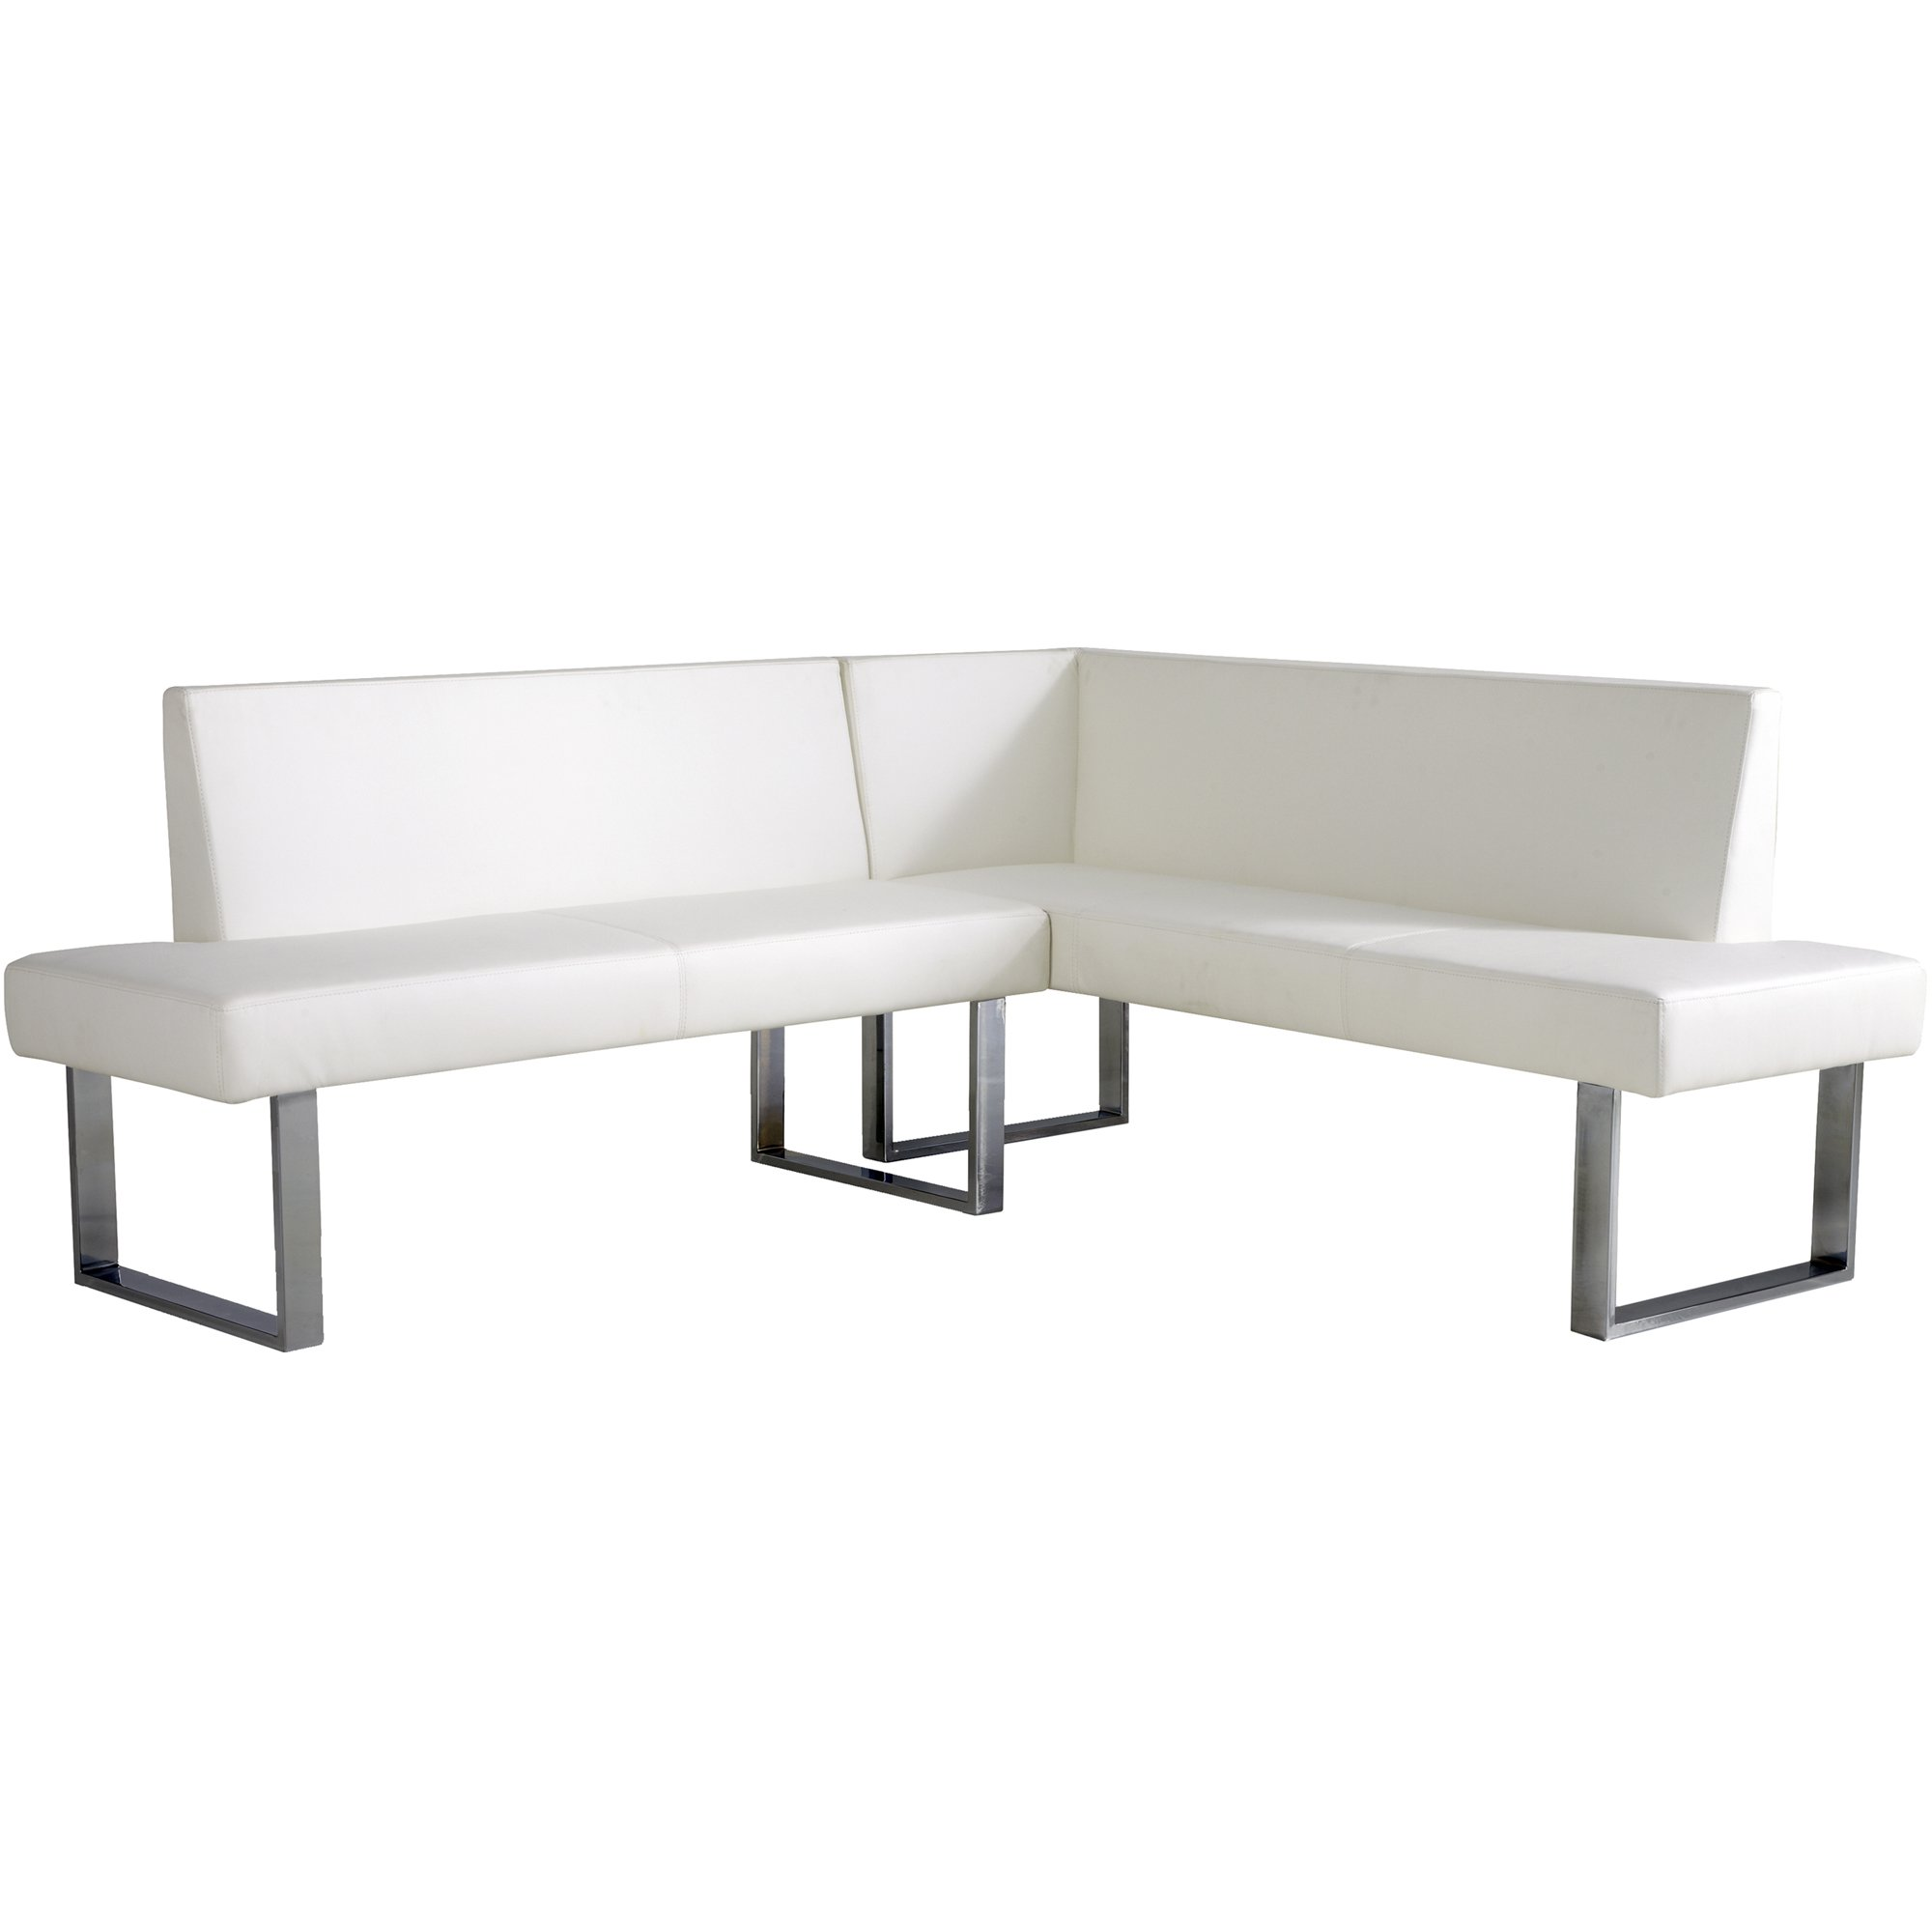 Armen Living Amanda Sectional in White and Chrome Finish by Armen Living